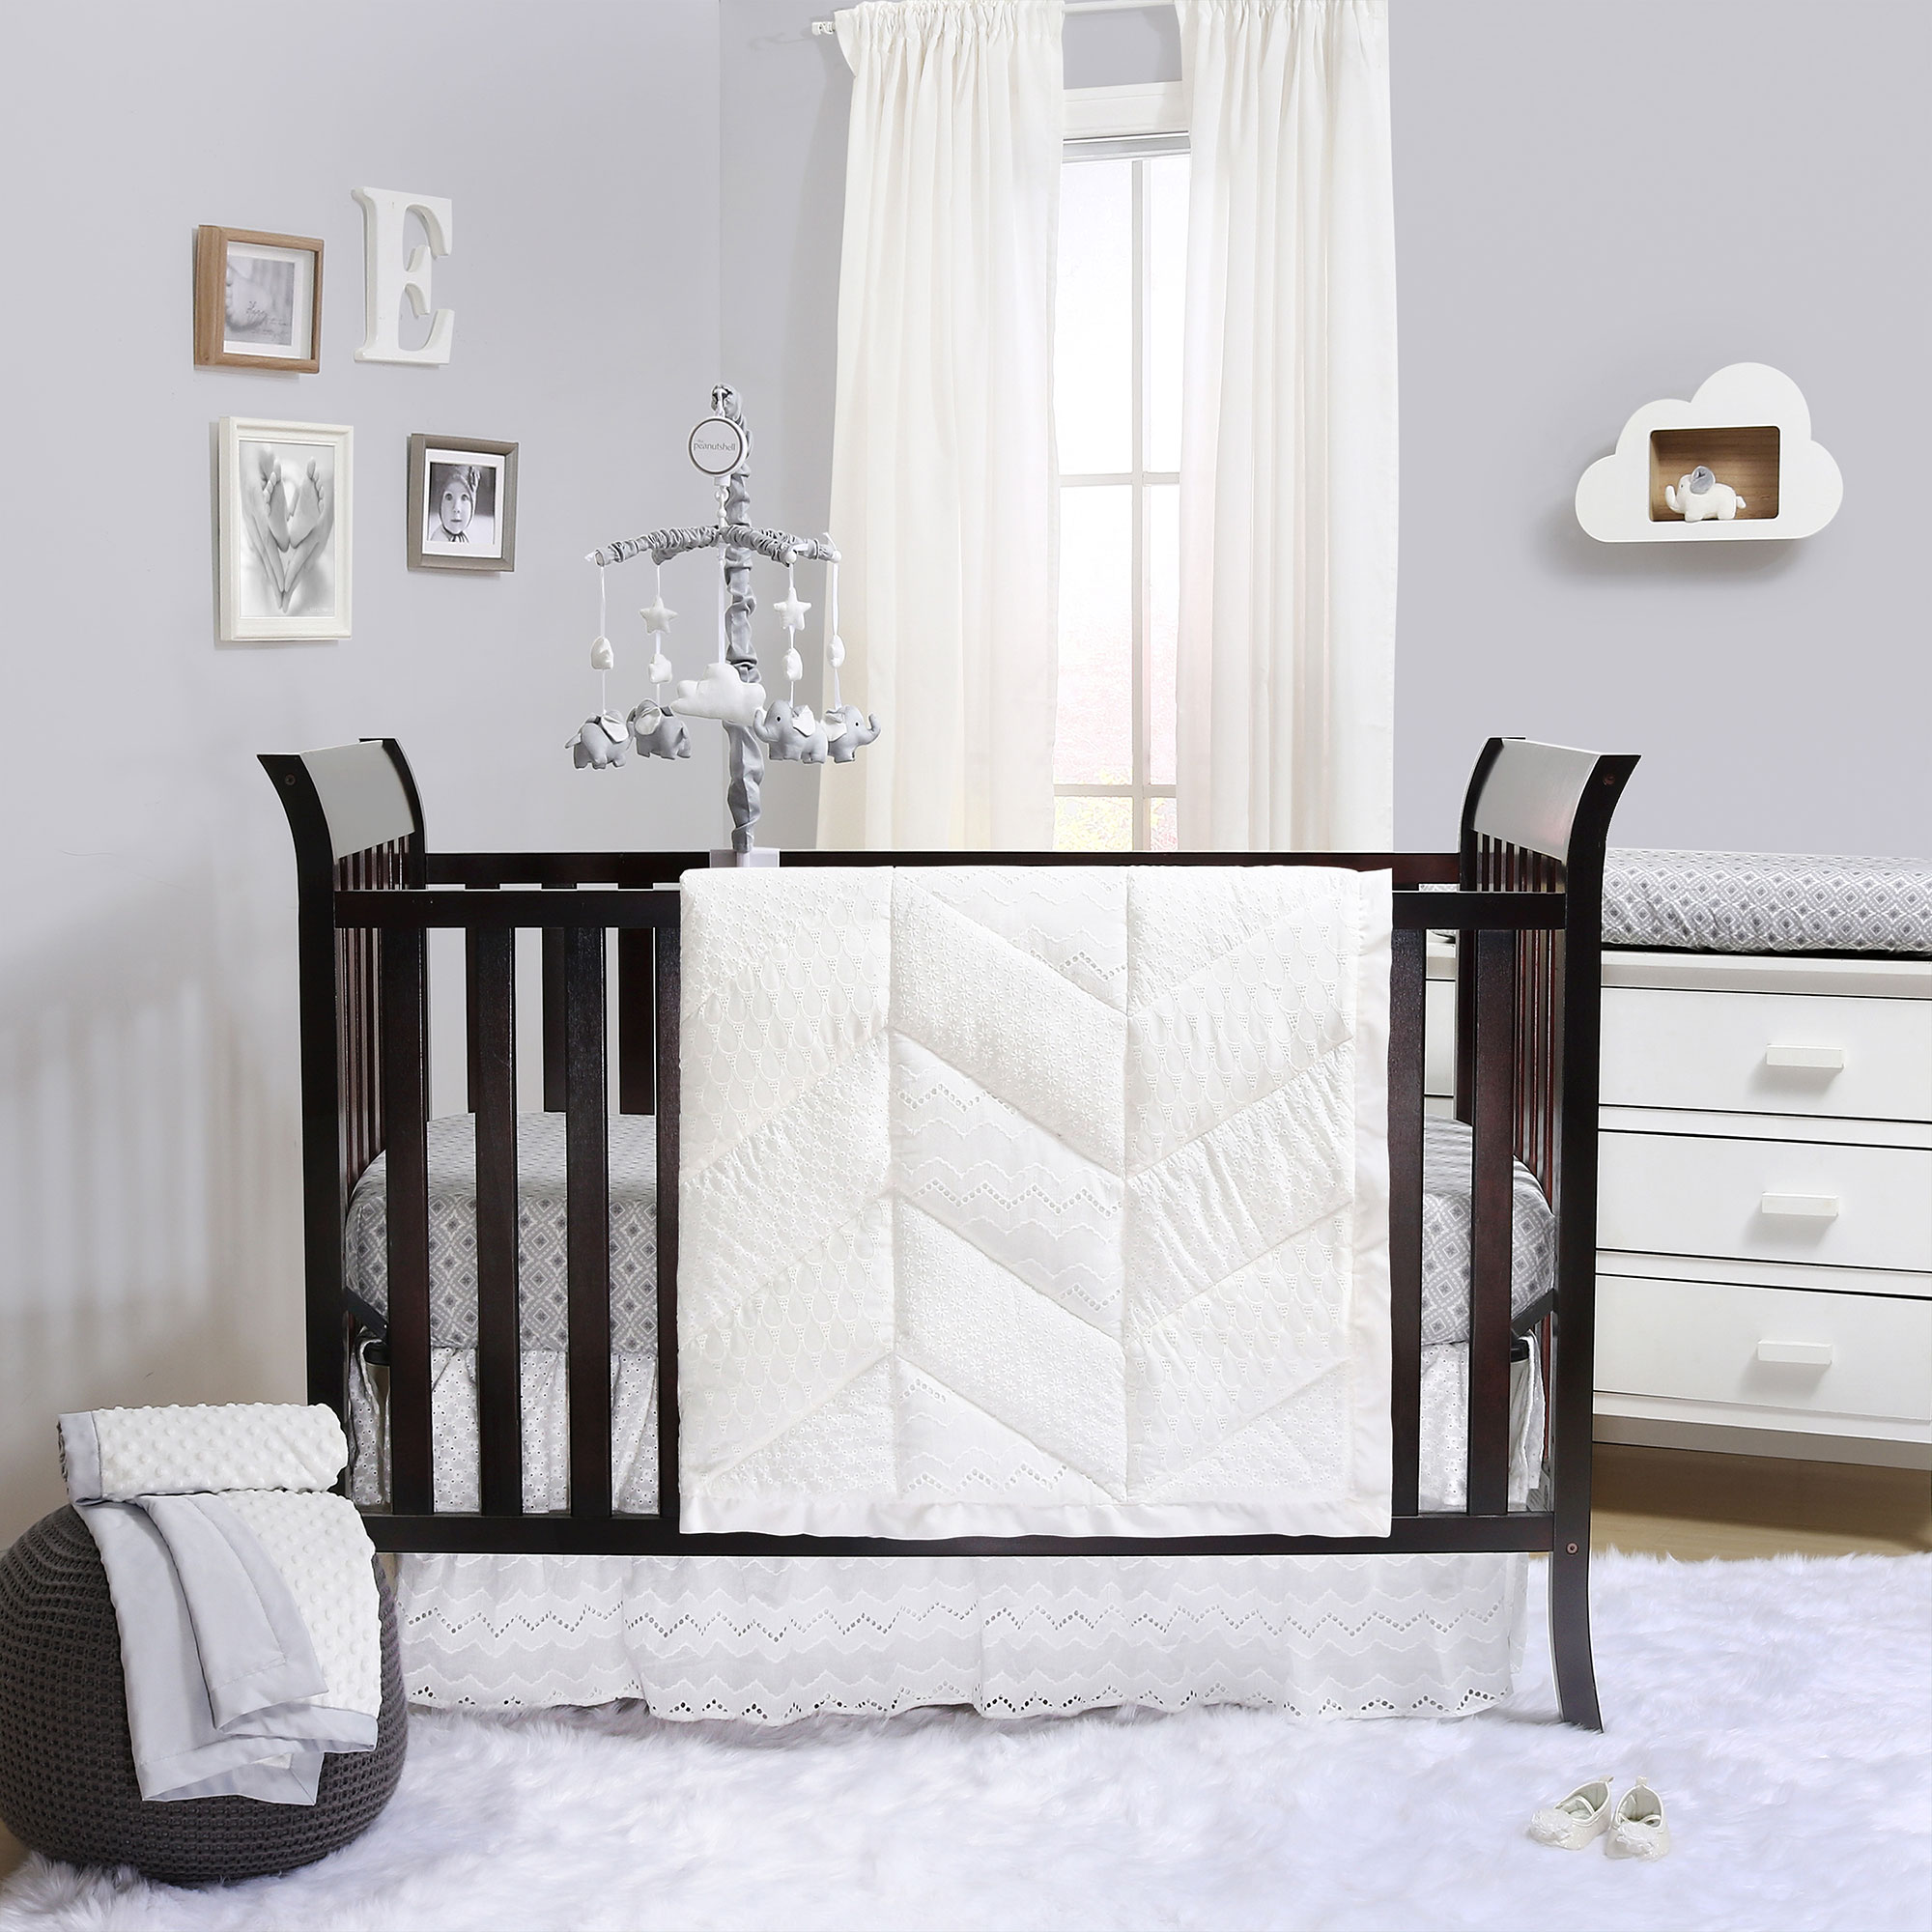 Taylor White Eyelet 6 Piece Deluxe Baby Crib Bedding Set by The Peanut Shell by The Peanut Shell